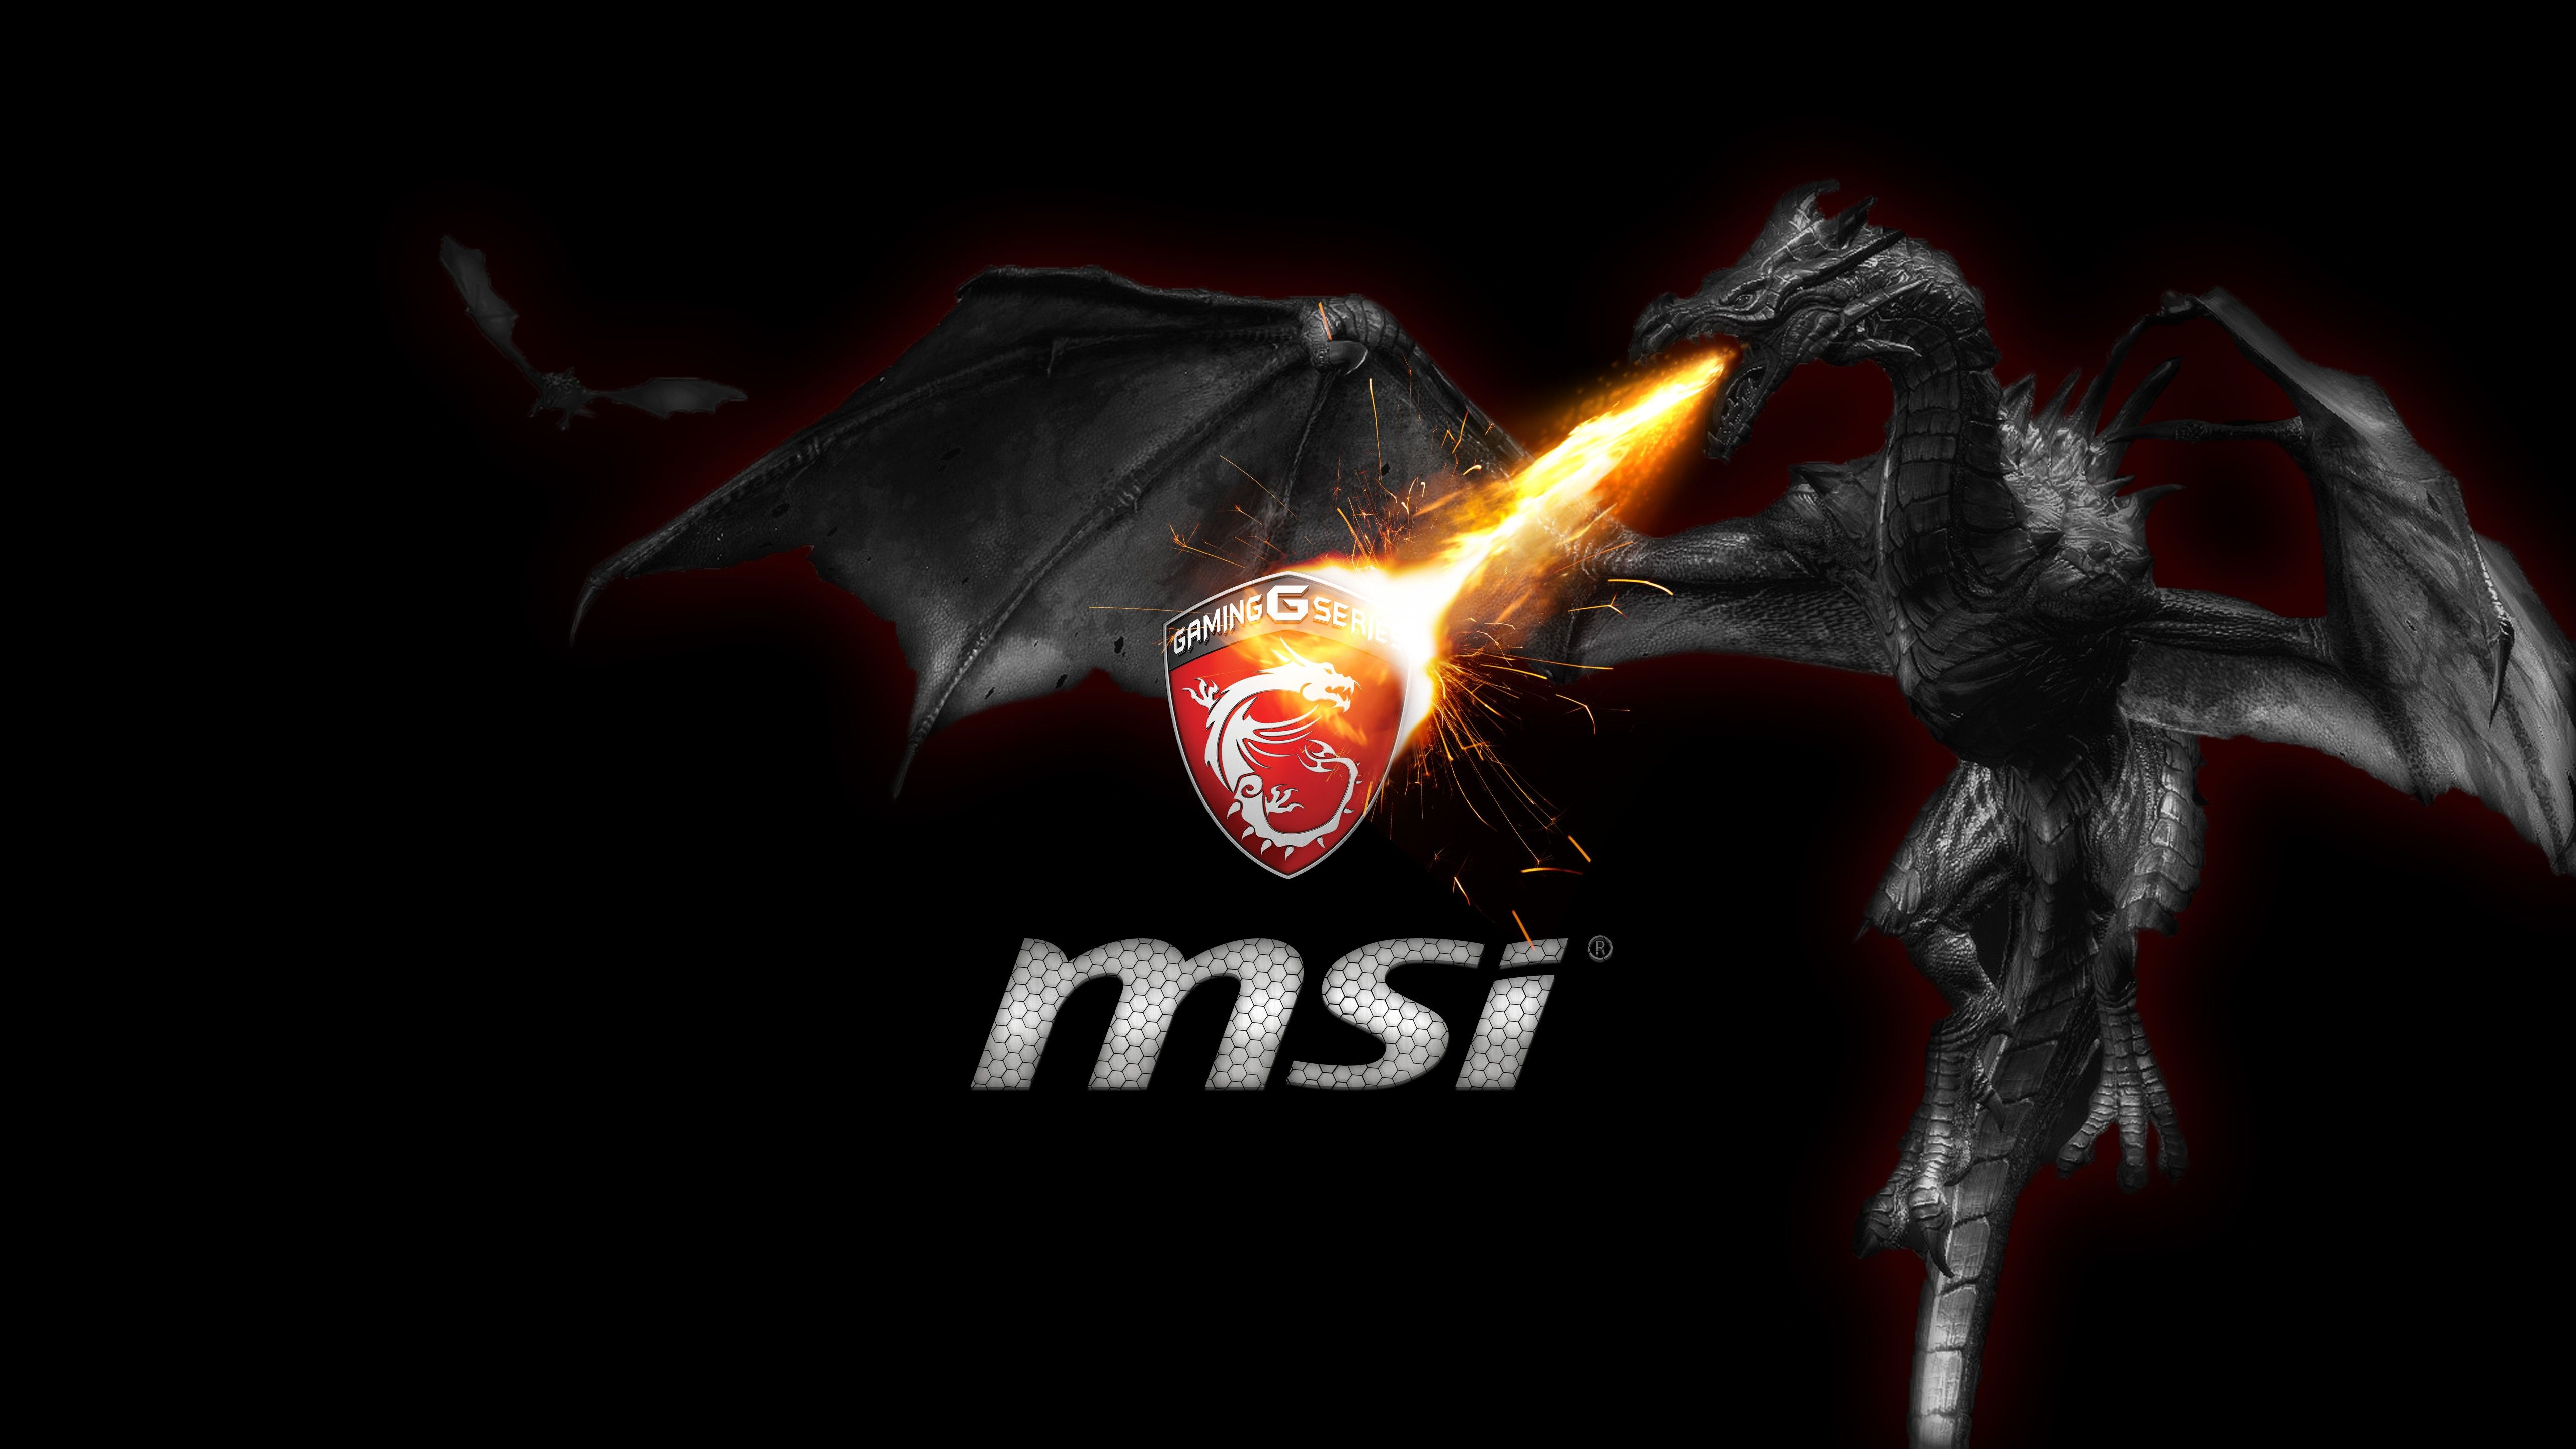 Msi 4k Ultra Hd Wallpapers Top Free Msi 4k Ultra Hd Backgrounds Wallpaperaccess